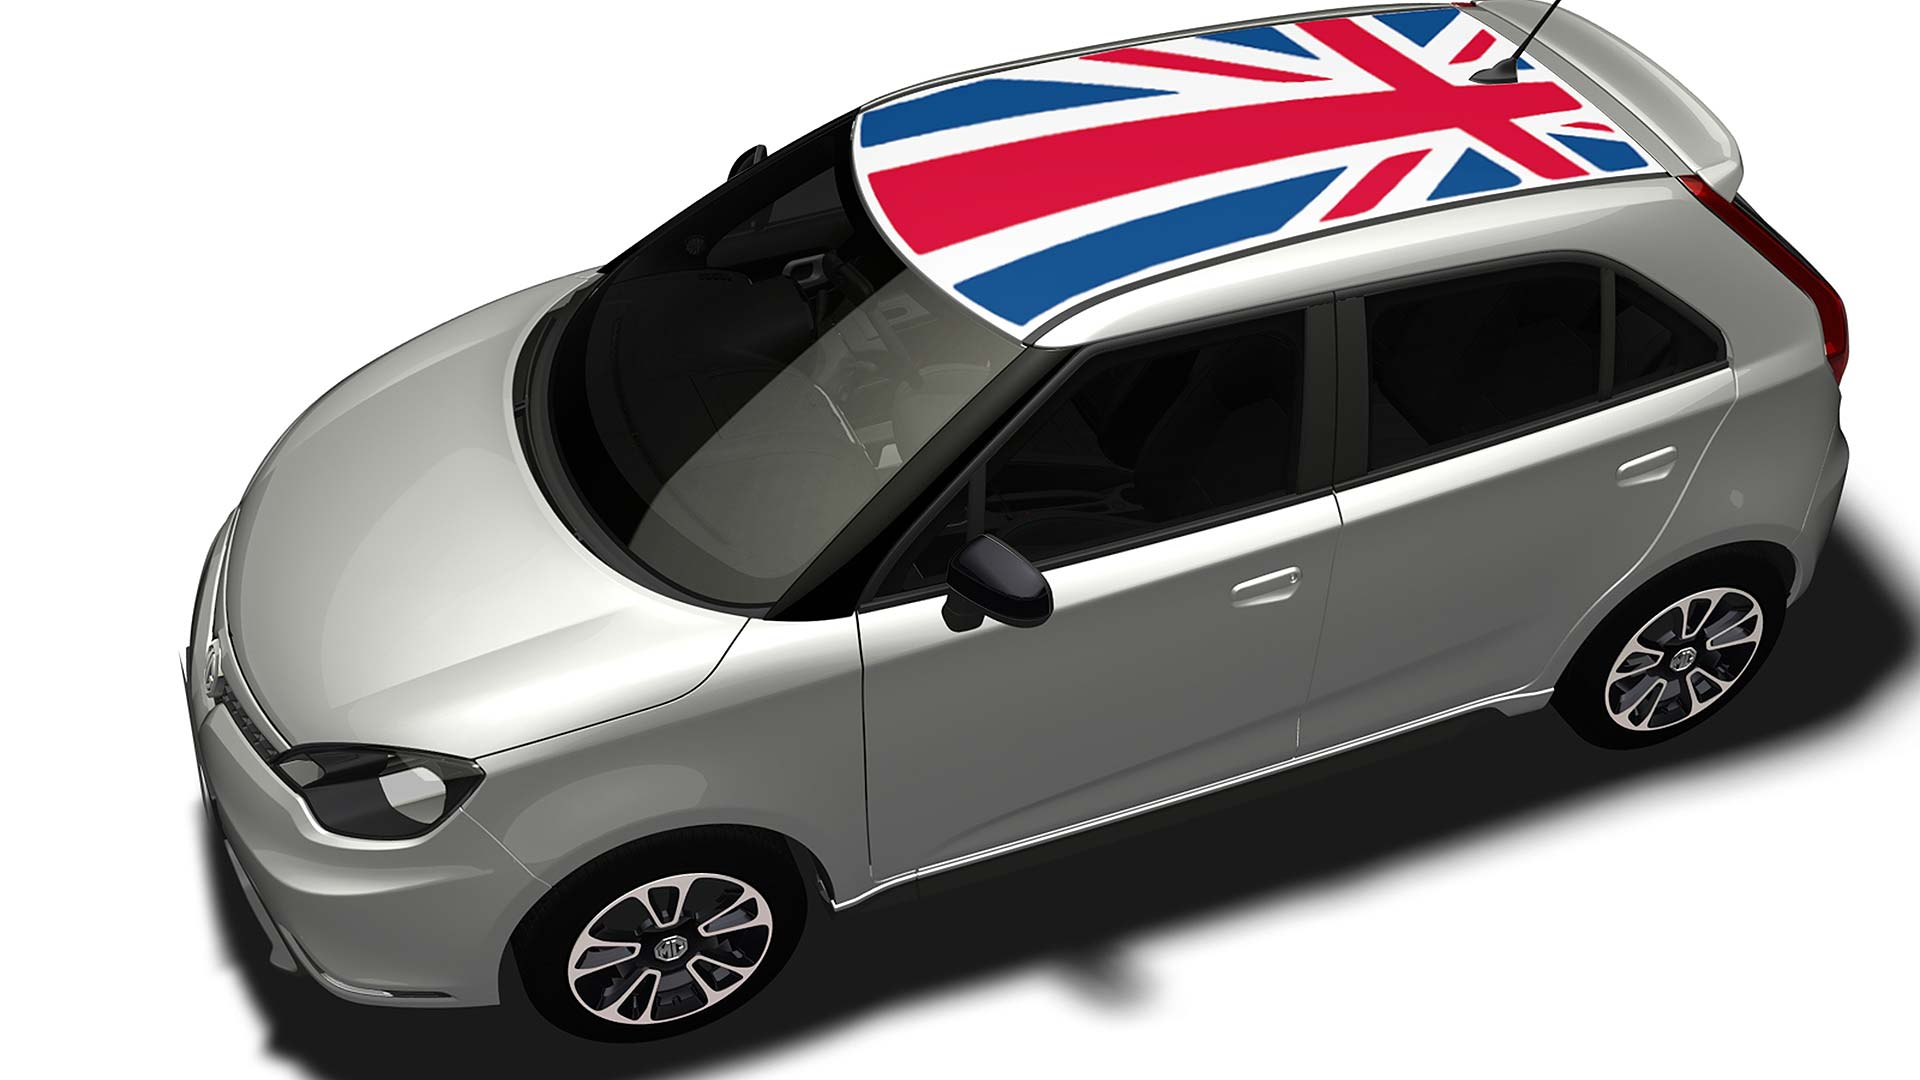 2014 MG3 with Union Flag roof accessory